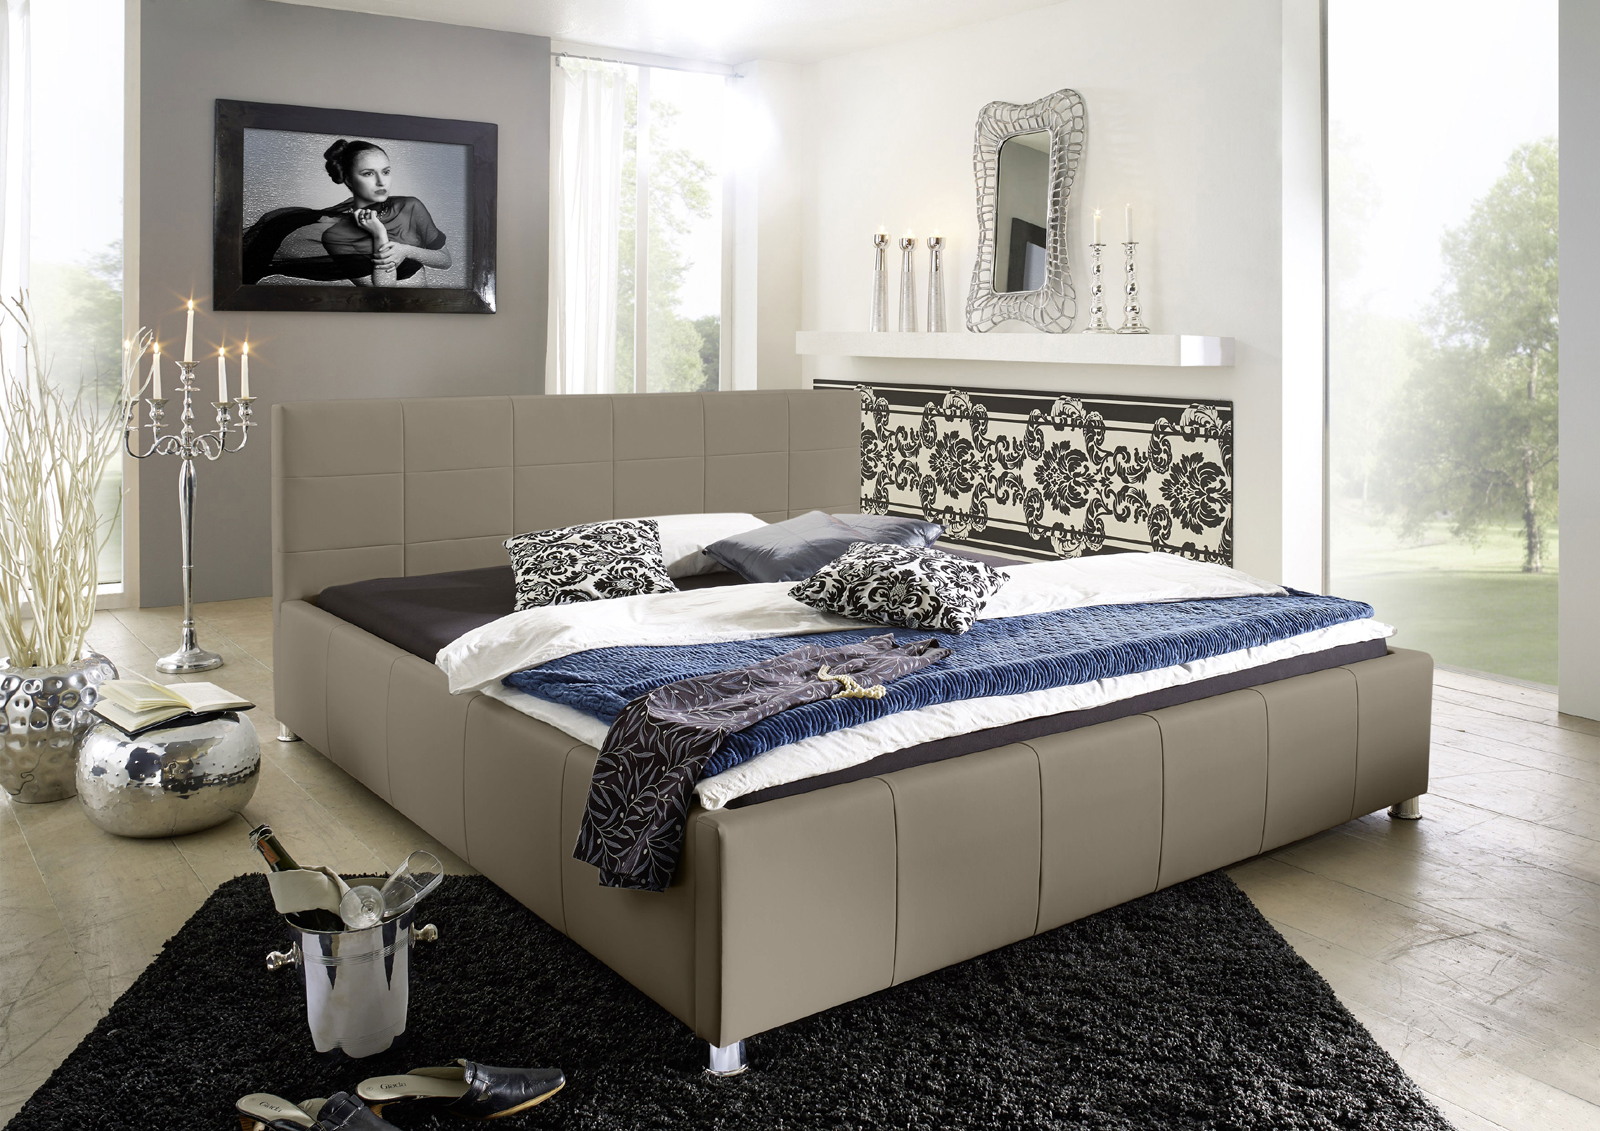 sam polster bett 160 x 200 cm farbauswahl kira bestellware. Black Bedroom Furniture Sets. Home Design Ideas